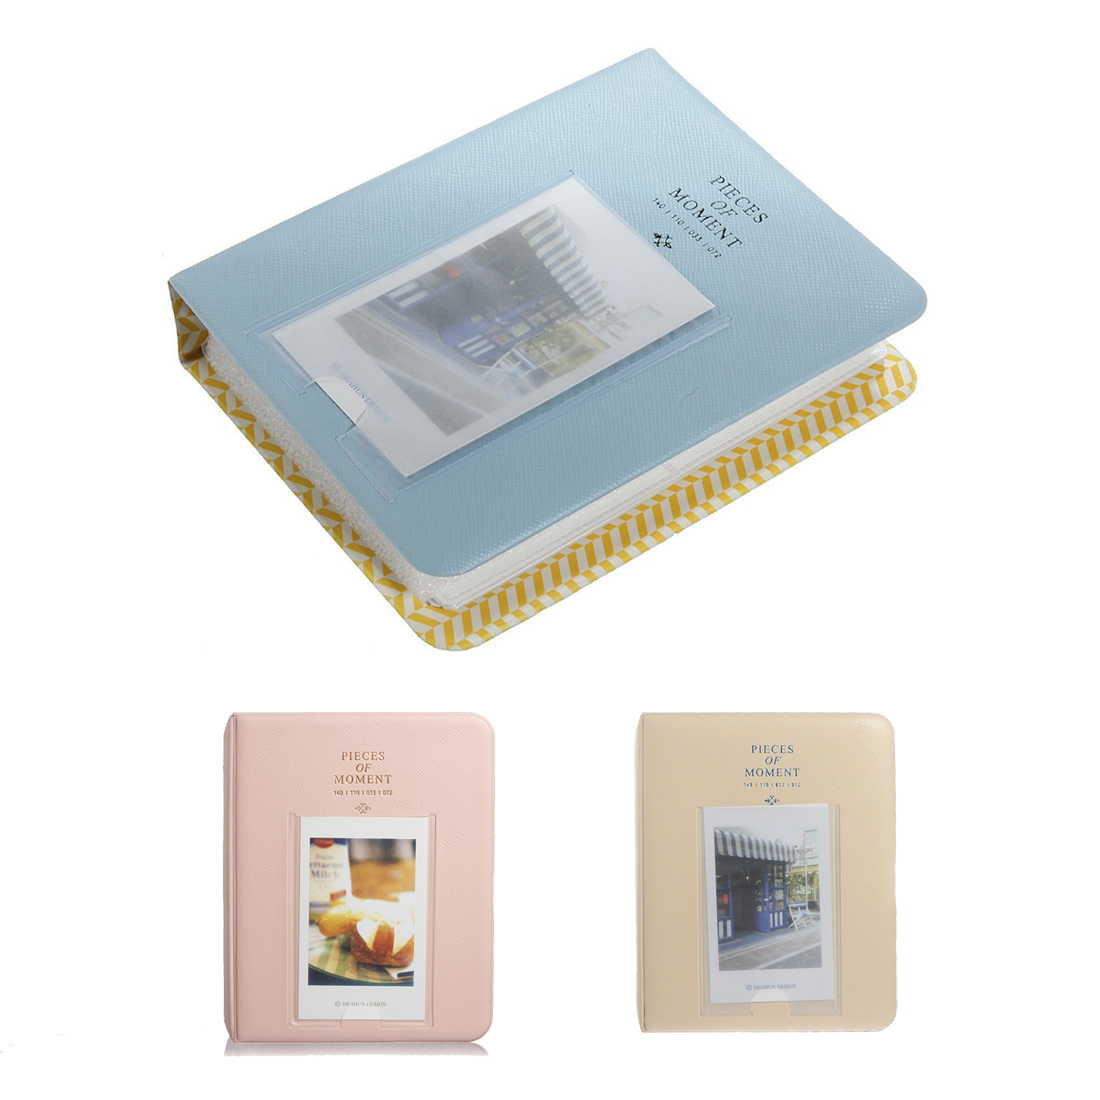 64 poches mini album case stockage pour polaroid photo. Black Bedroom Furniture Sets. Home Design Ideas